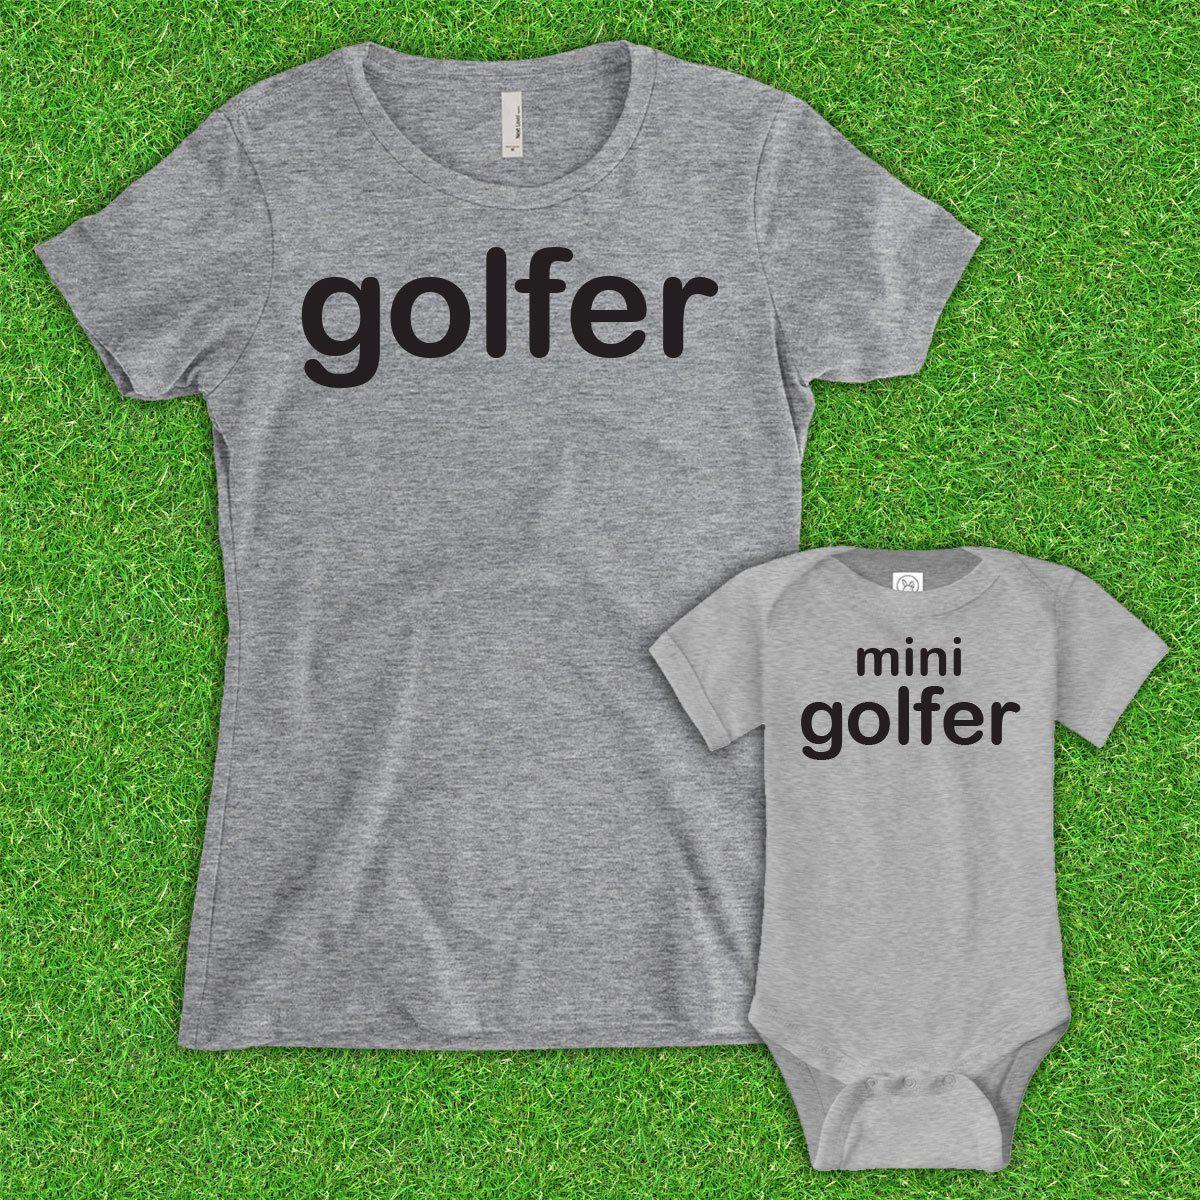 Mom Golfer, Mini Golfer (Matching Set) - Gray